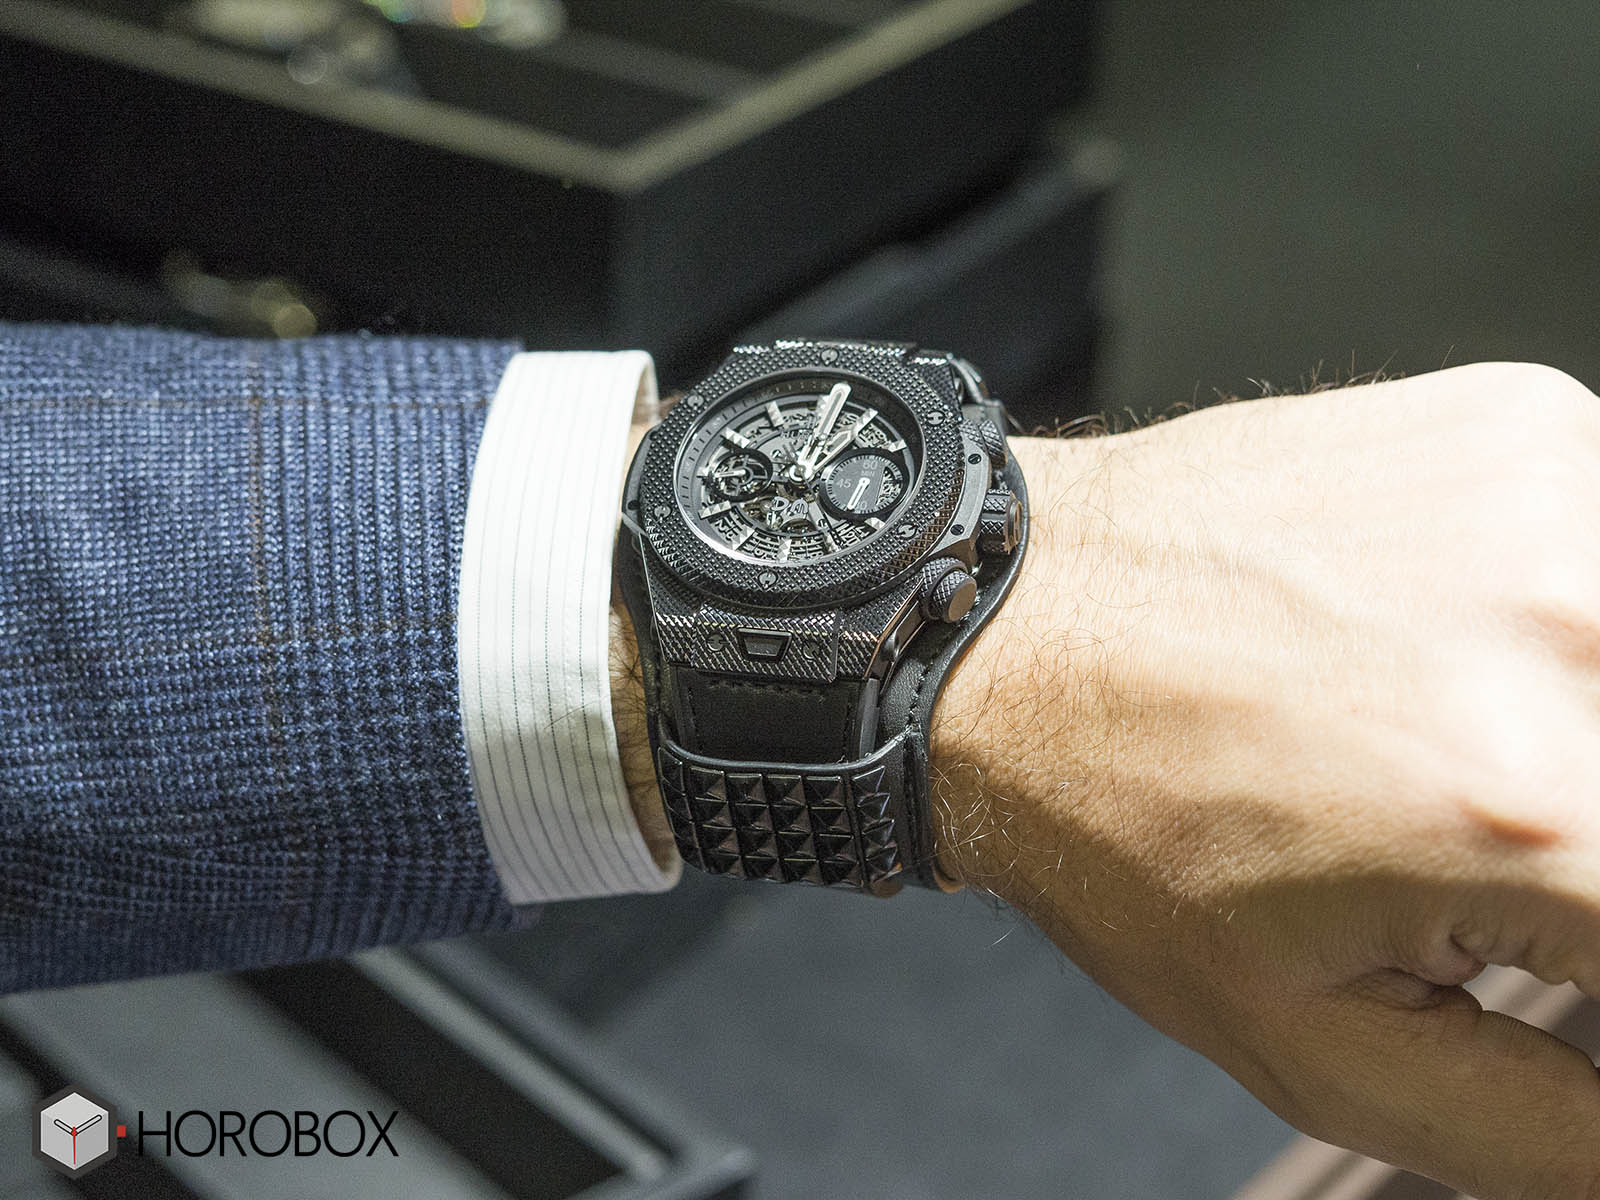 hublot-big-bang-depeche-mode-4.jpg